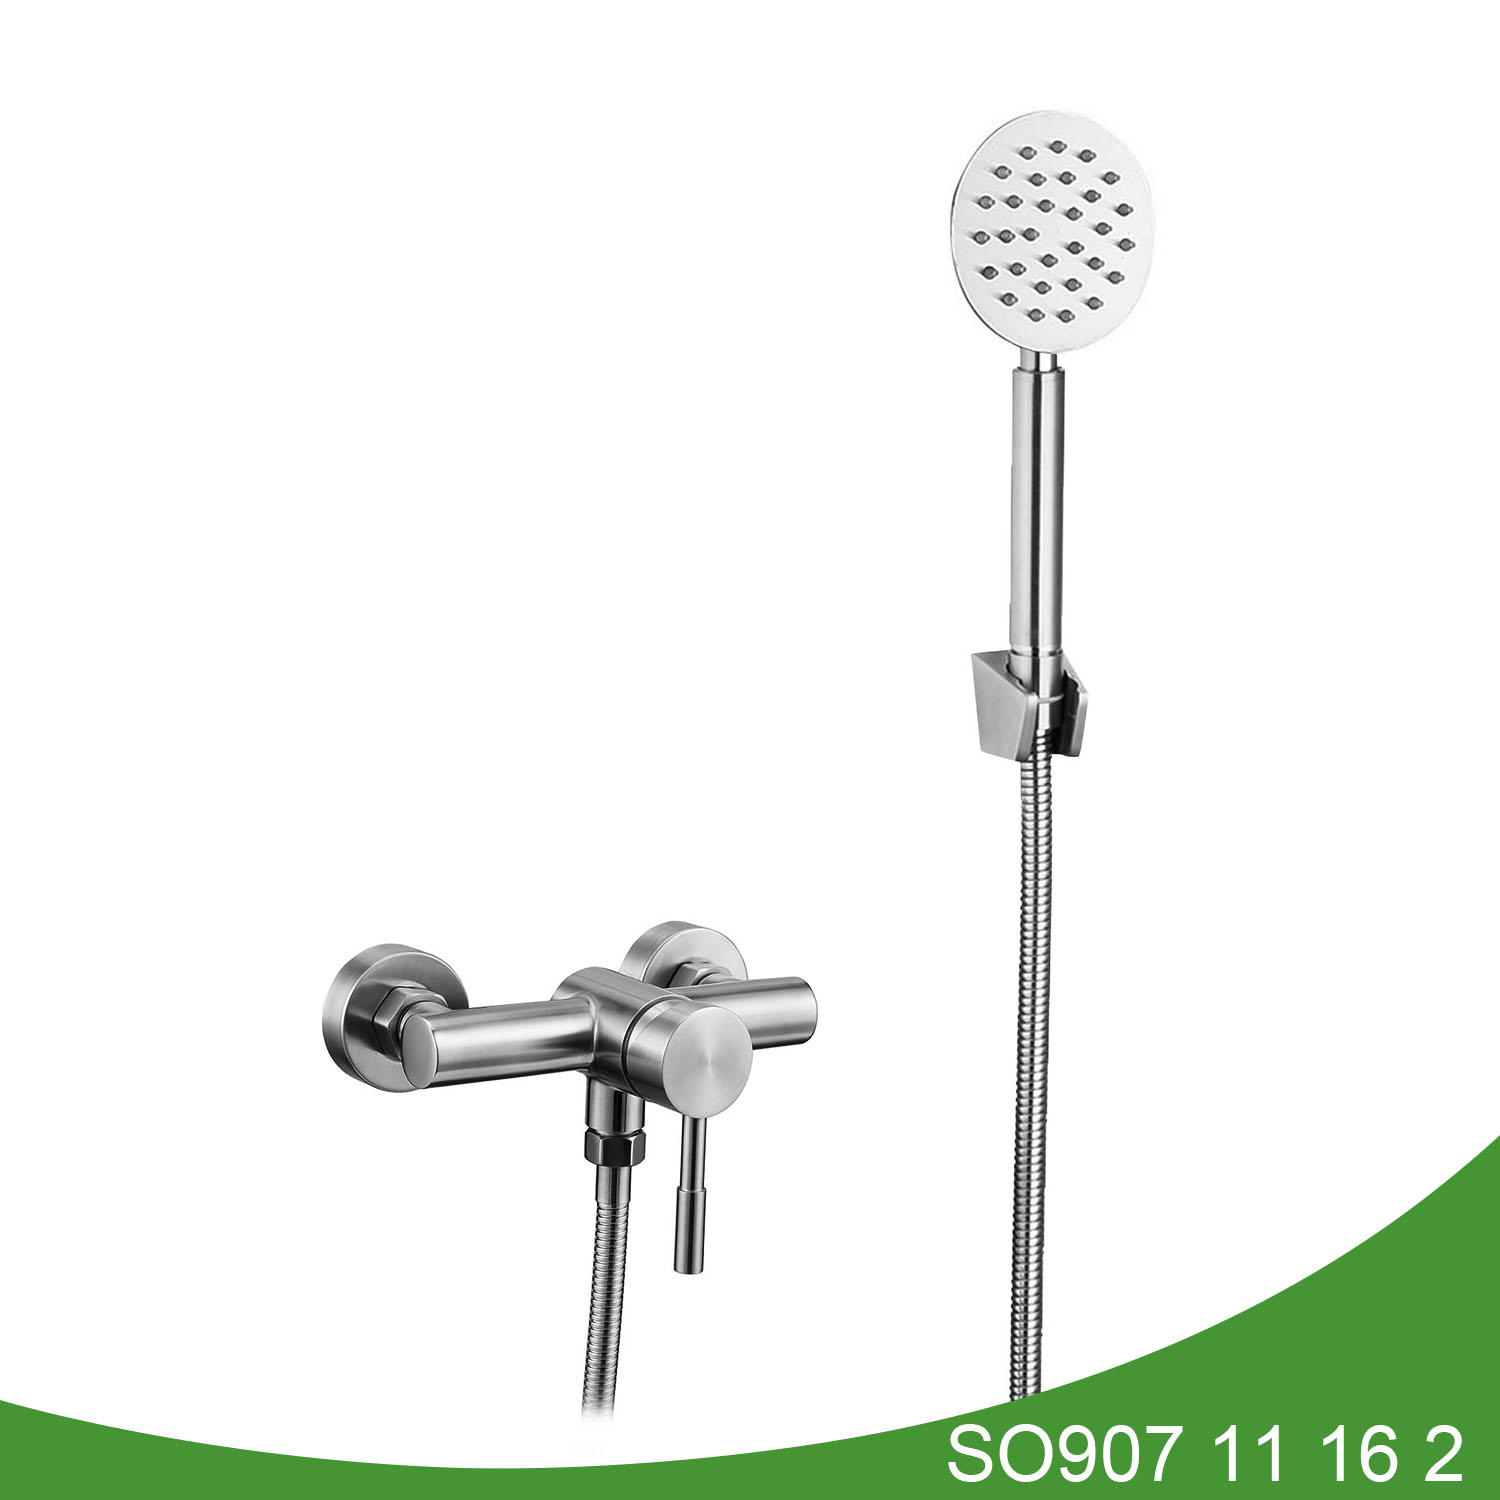 Stainless steel shower mixer SO907 11 16 2